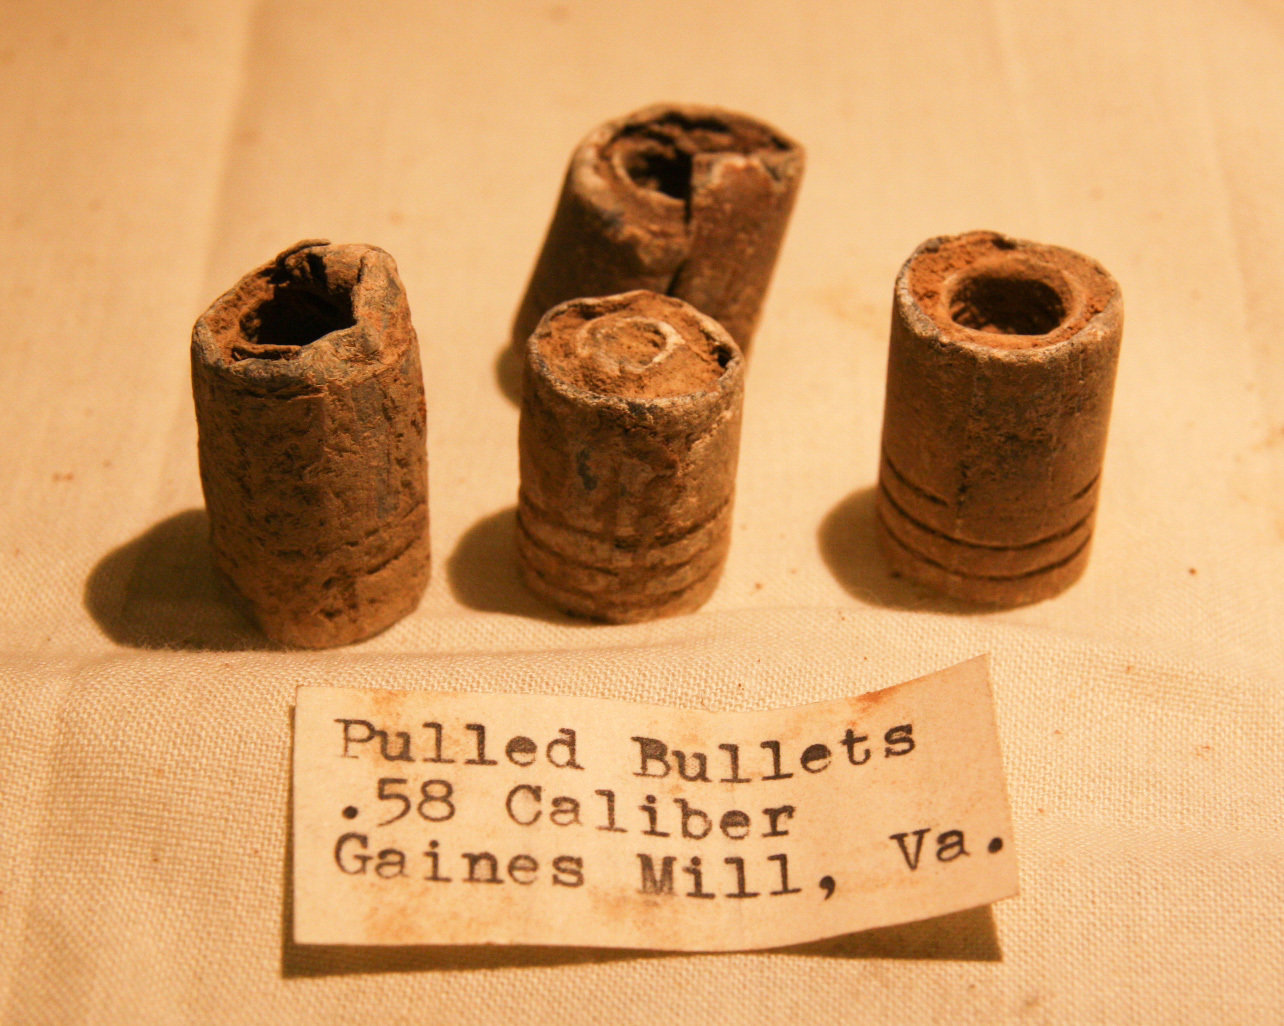 JUST ADDED ON 8/1 - THE BATTLE OF GAINES' MILL - Four Misfired/Pulled Bullets with Deep Bullet Worm Marks found in 1963 with Original Collection Label